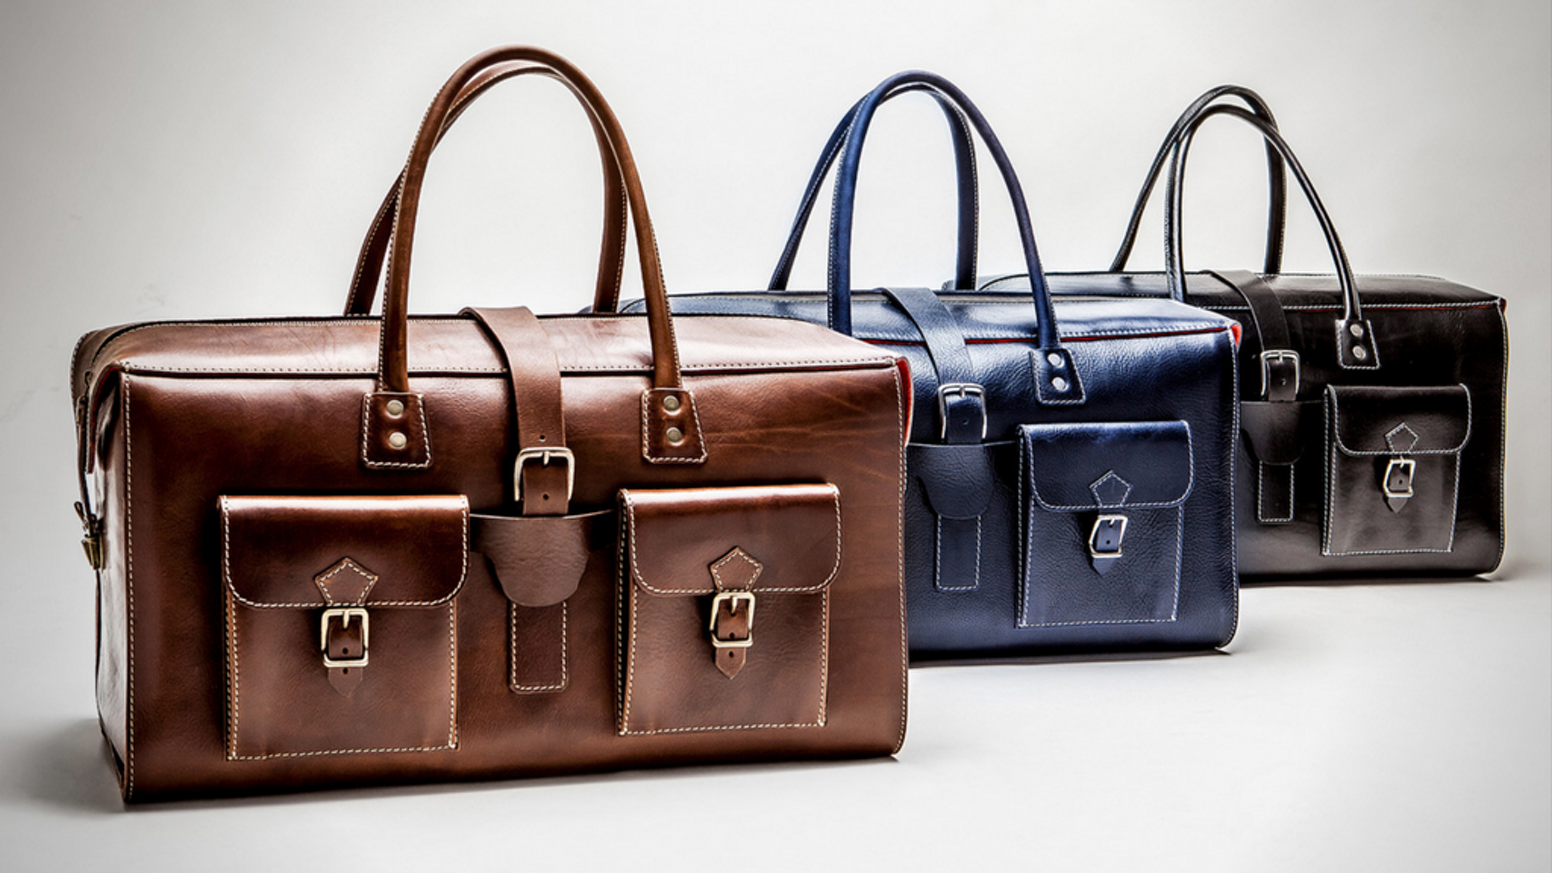 Full Grain Leather Bags Designed To Never Lose Their Shape And Turn Heads Meqnes Are Handcrafted From Calfskin